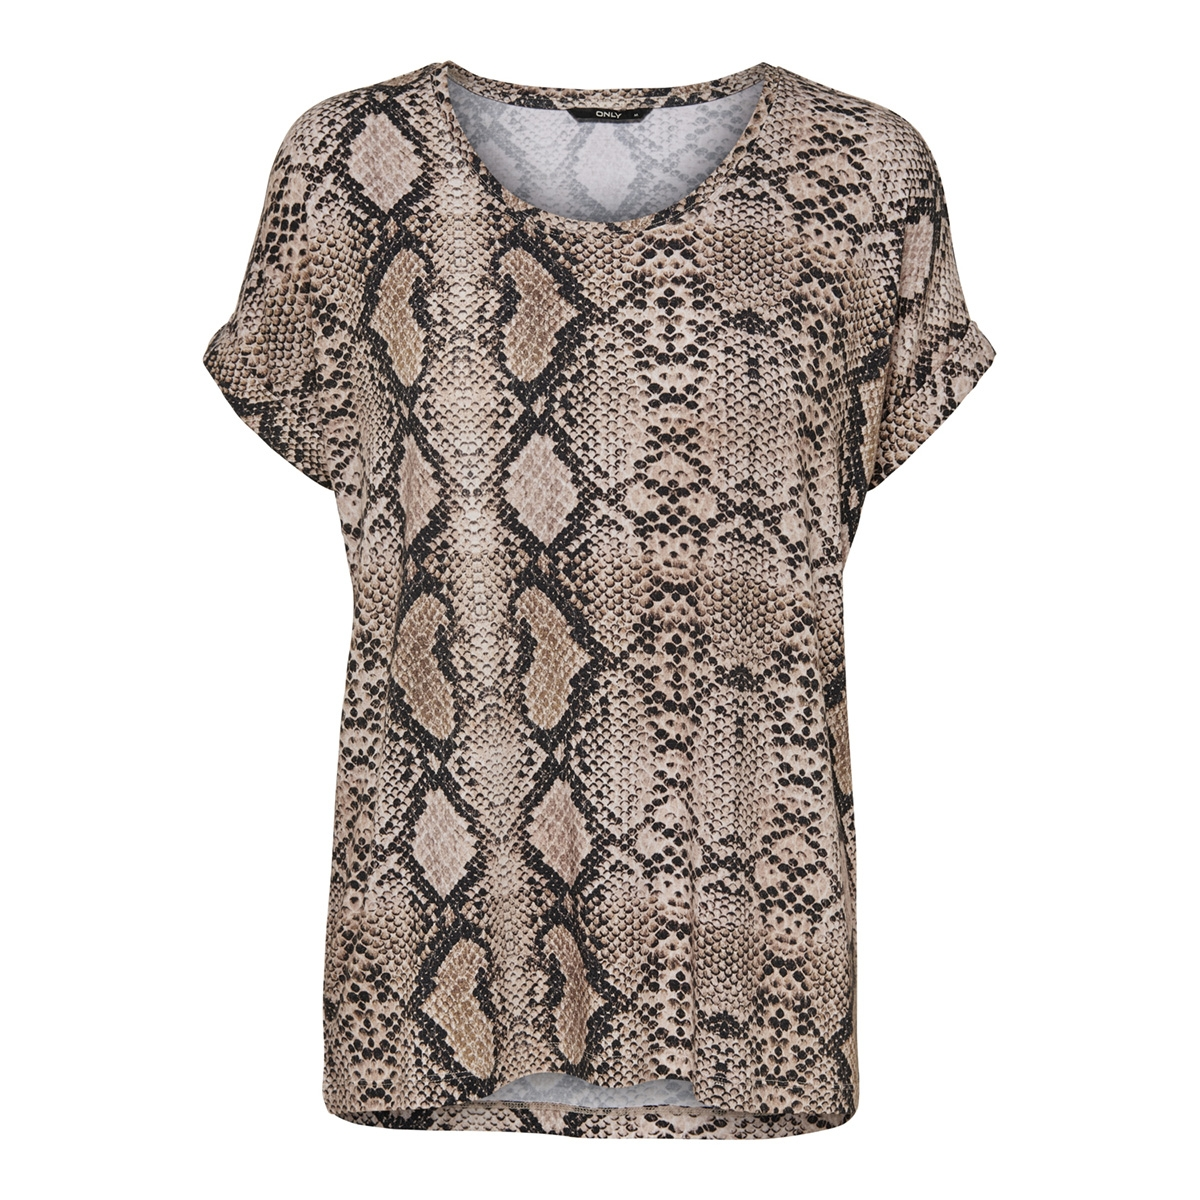 onlmoster aop s/s top jrs 15182852 only t-shirt black/snake